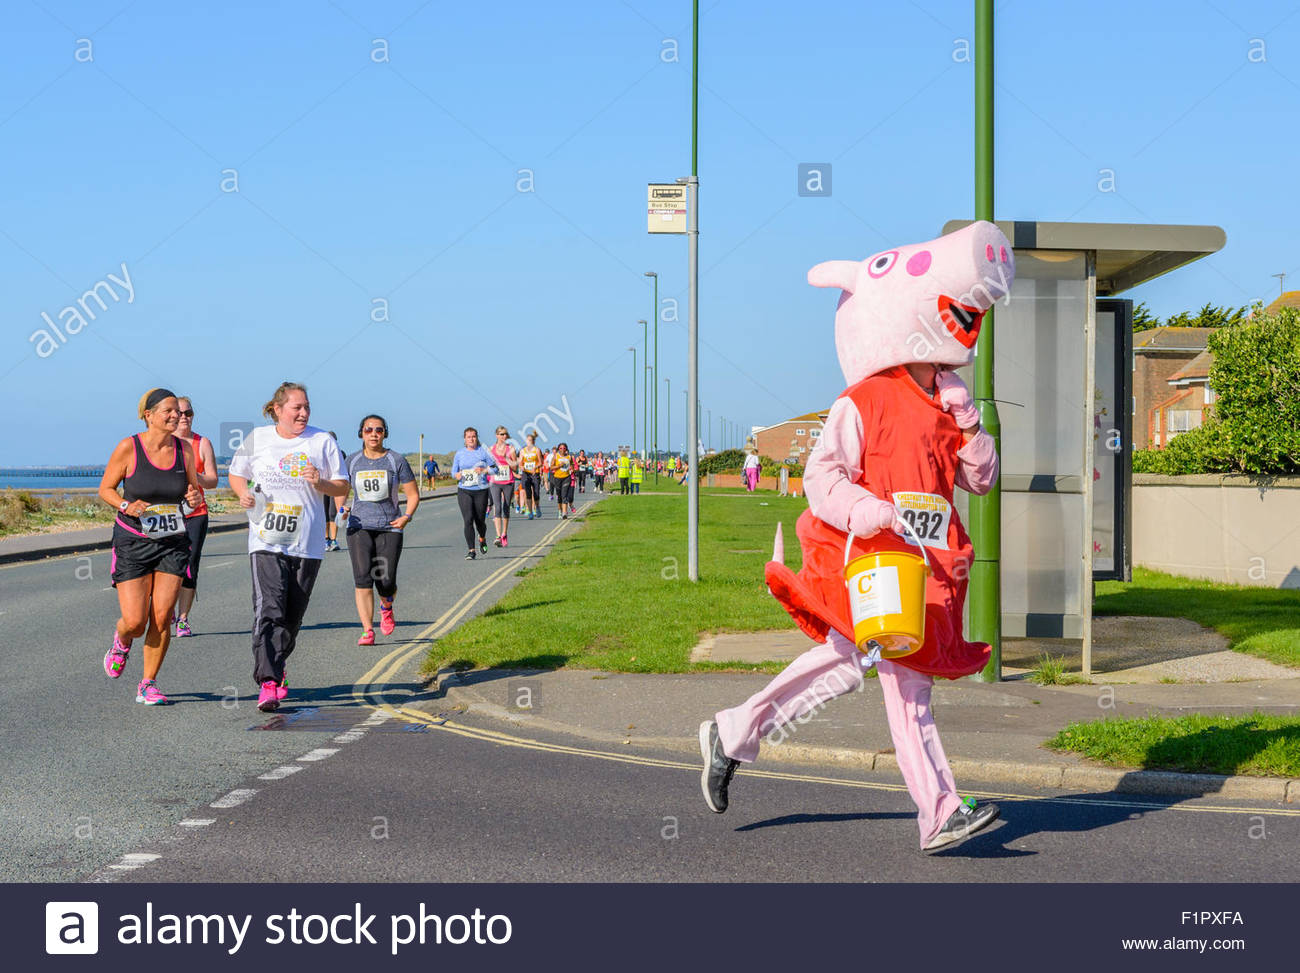 runner-dressed-at-peppa-pig-at-the-chestnut-tree-house-10k-charity-F1PXFA.jpg